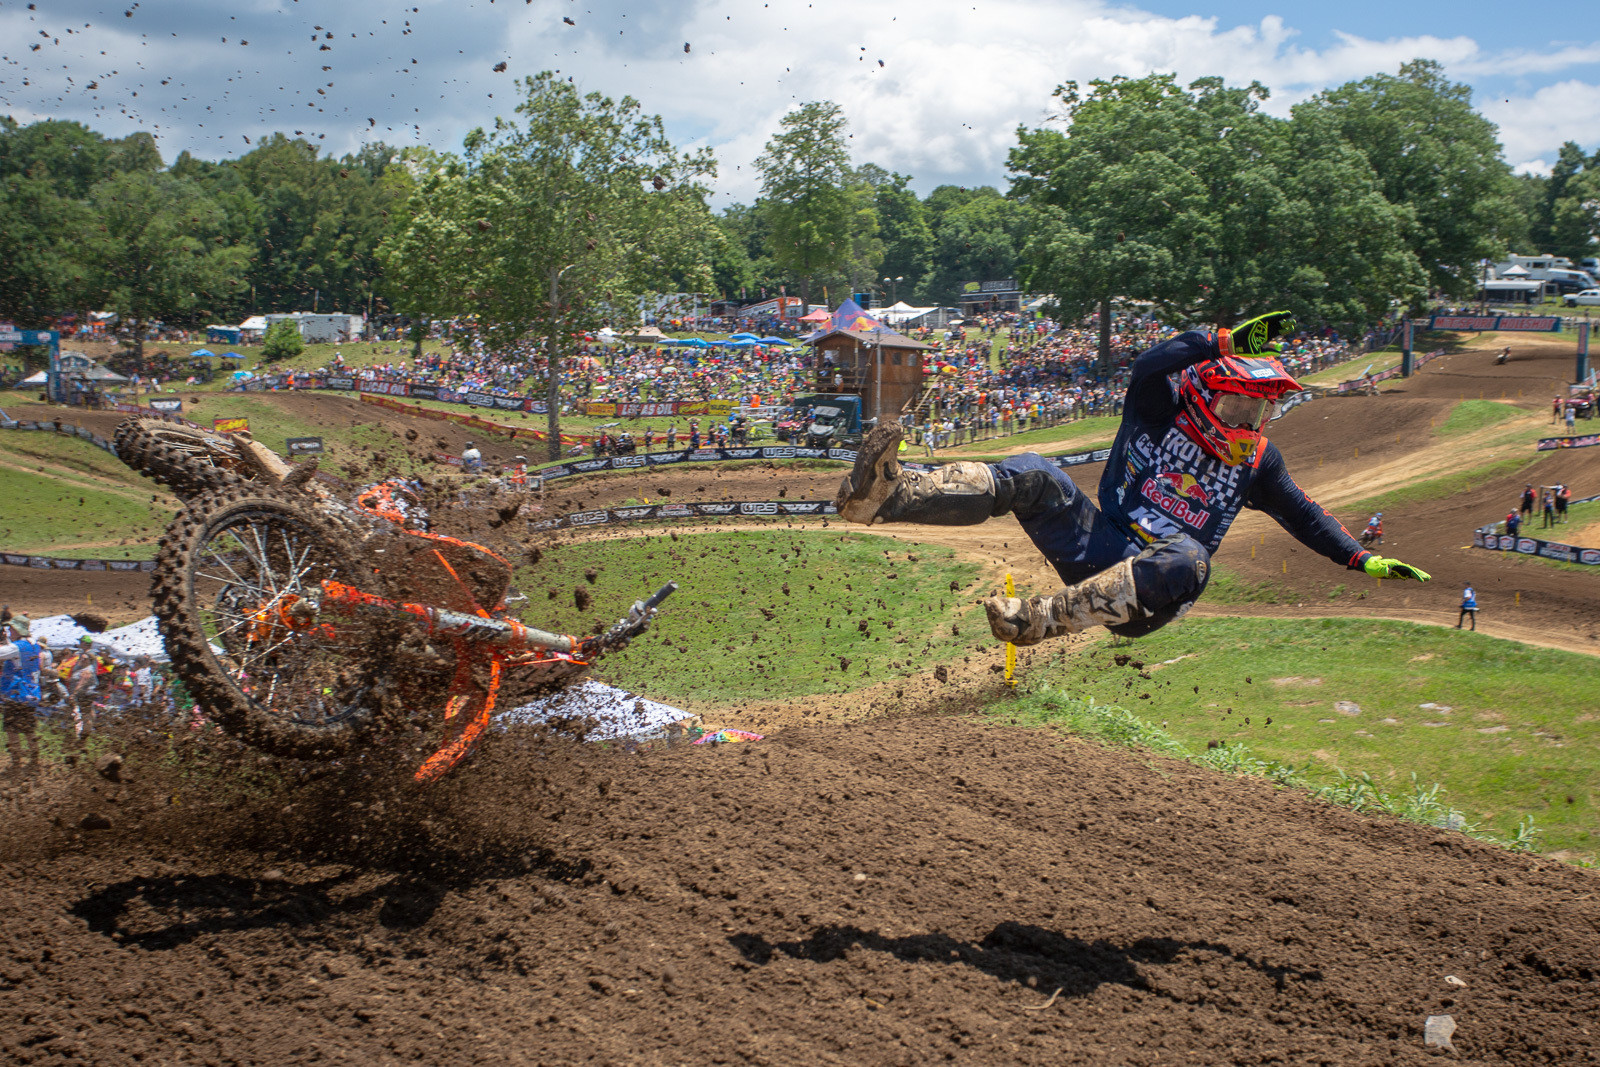 This was such an odd crash for Alex Martin at Muddy Creek. He got cross-rutted on a section that rarely produced any crashes.